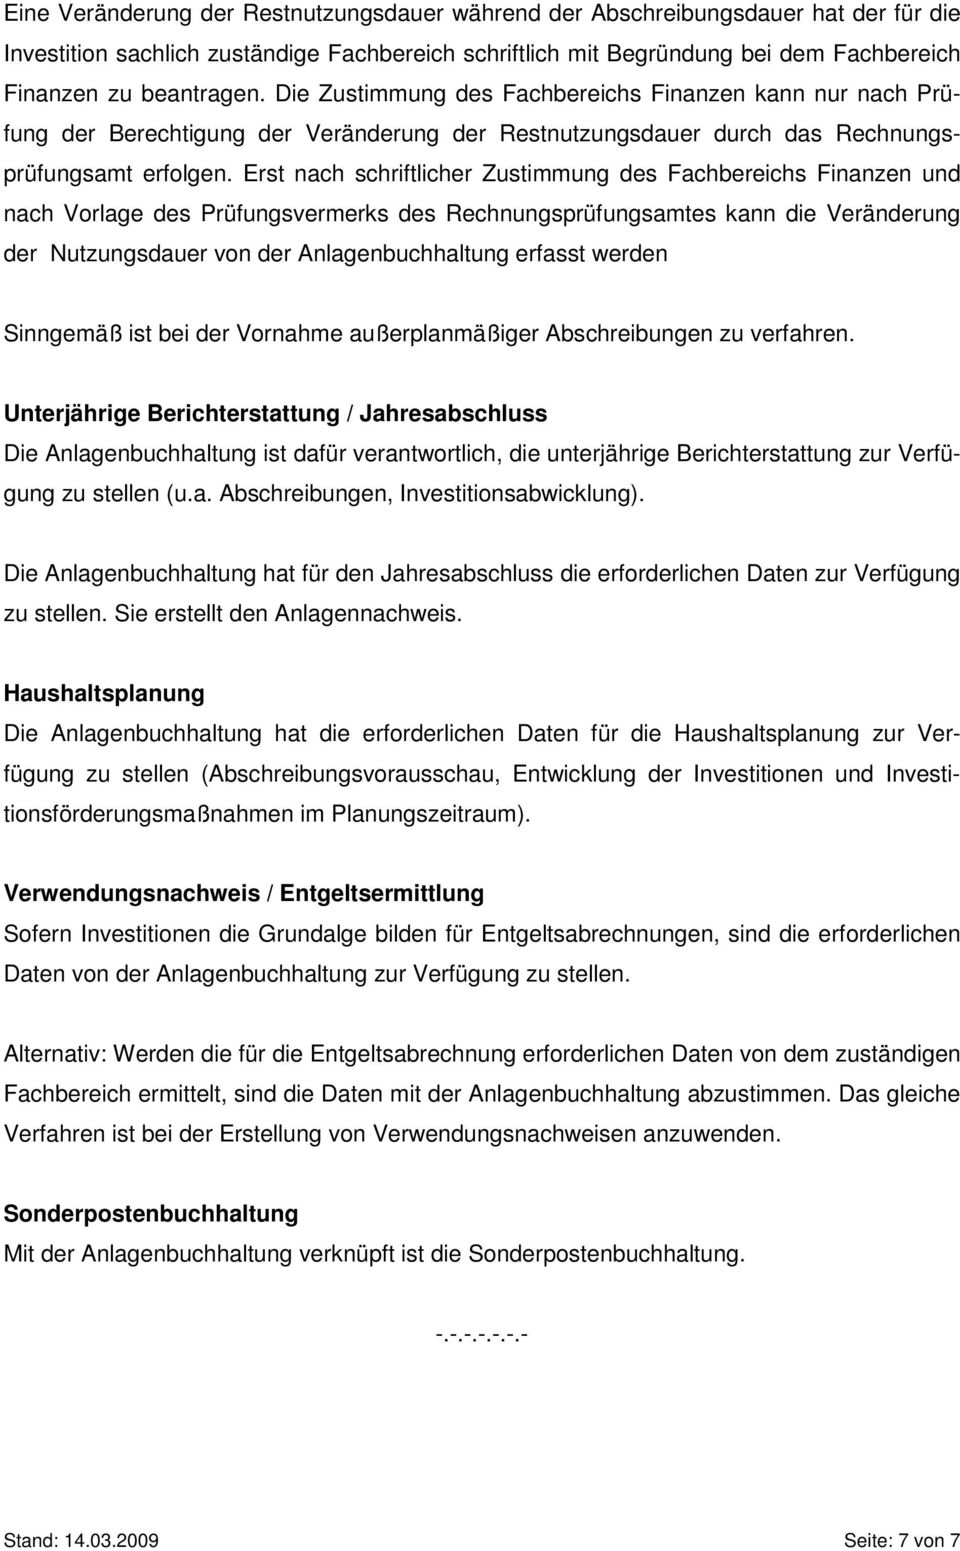 Nett Zustimmung Tagesordnung Vorlage Bilder - Entry Level Resume ...